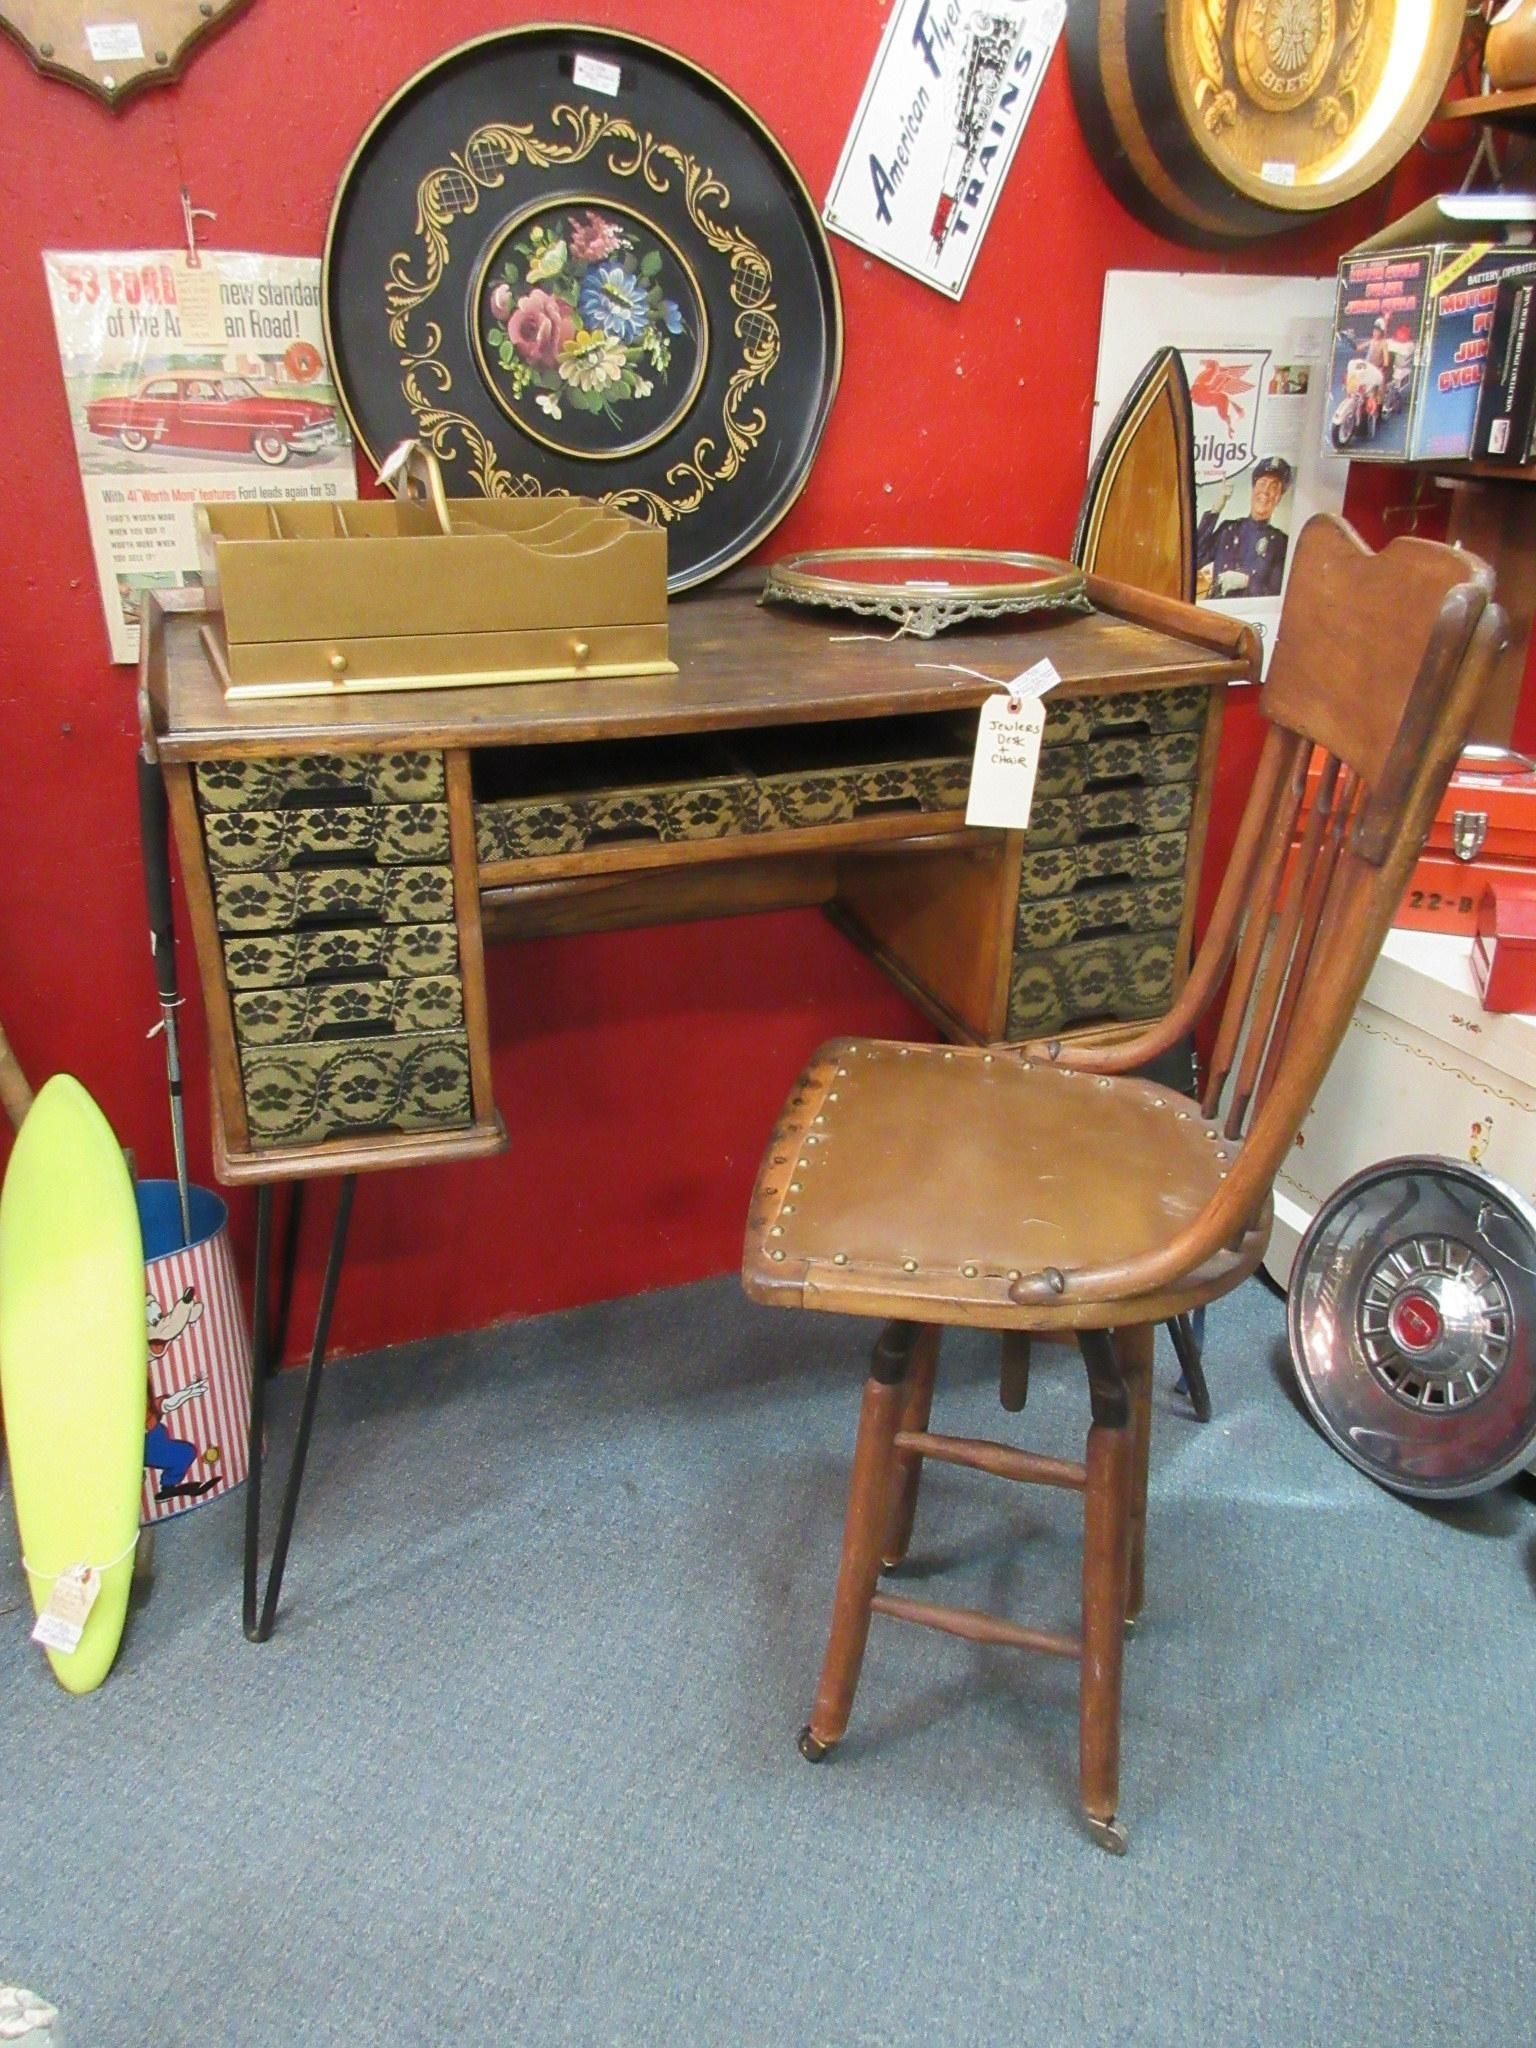 Antique Jeweler's desk and chair. From Vendor 806 in booth 2. Priced at  299.00. ~ The Brass Armadillo Antique Mall in Denver, CO. 303-403-1677 ~ - Antique Jeweler's Desk And Chair. From Vendor 806 In Booth 2. Priced